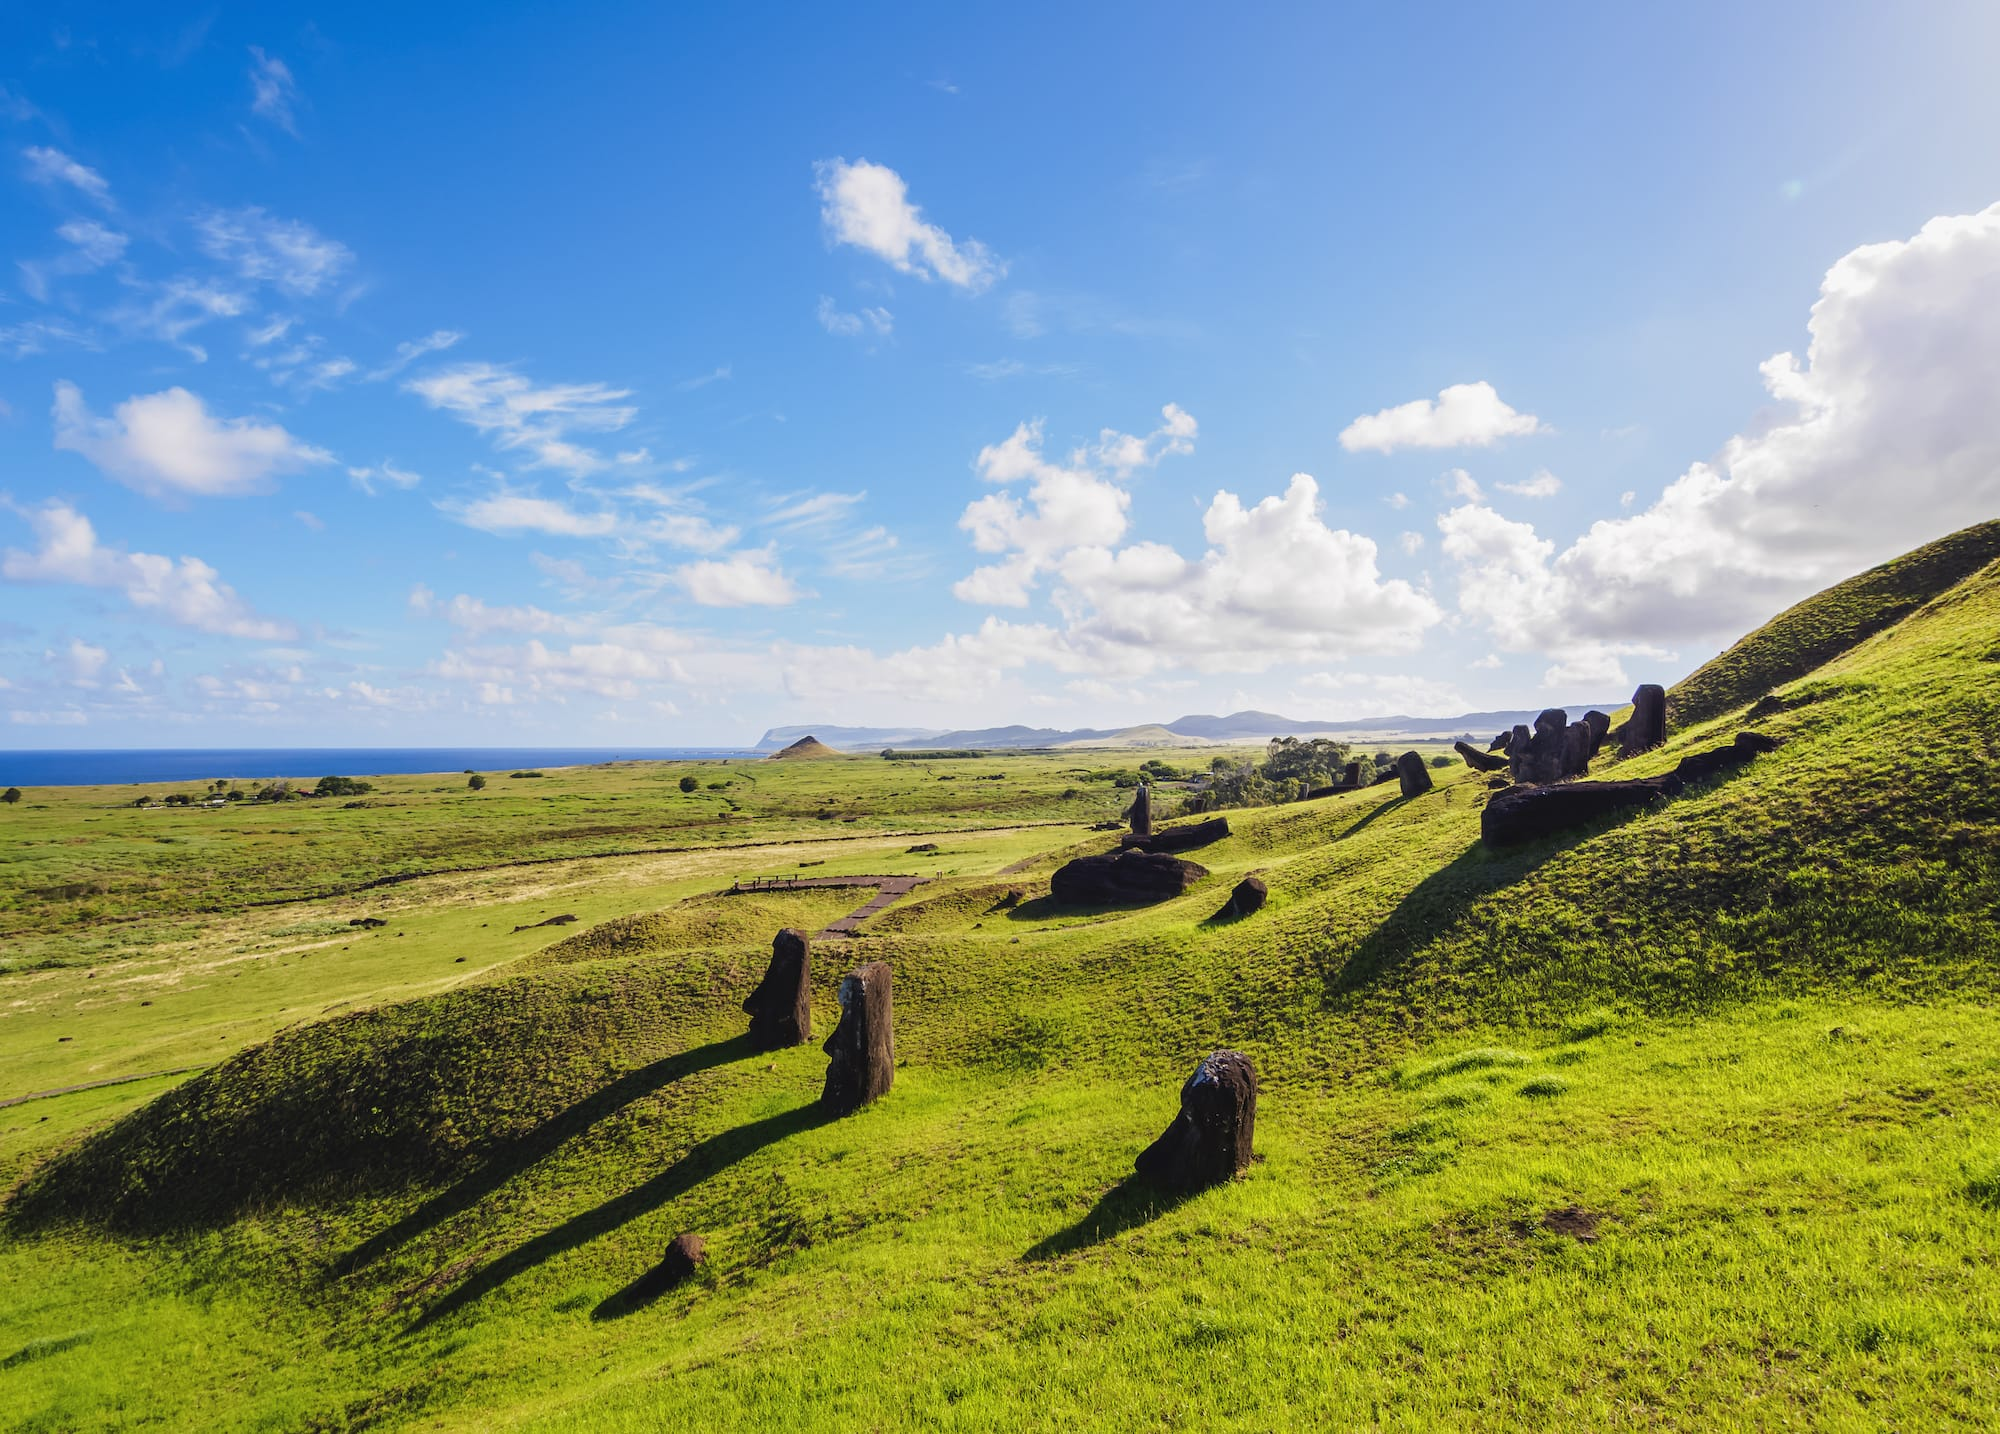 Rondreis Paaseiland Easter Island travel